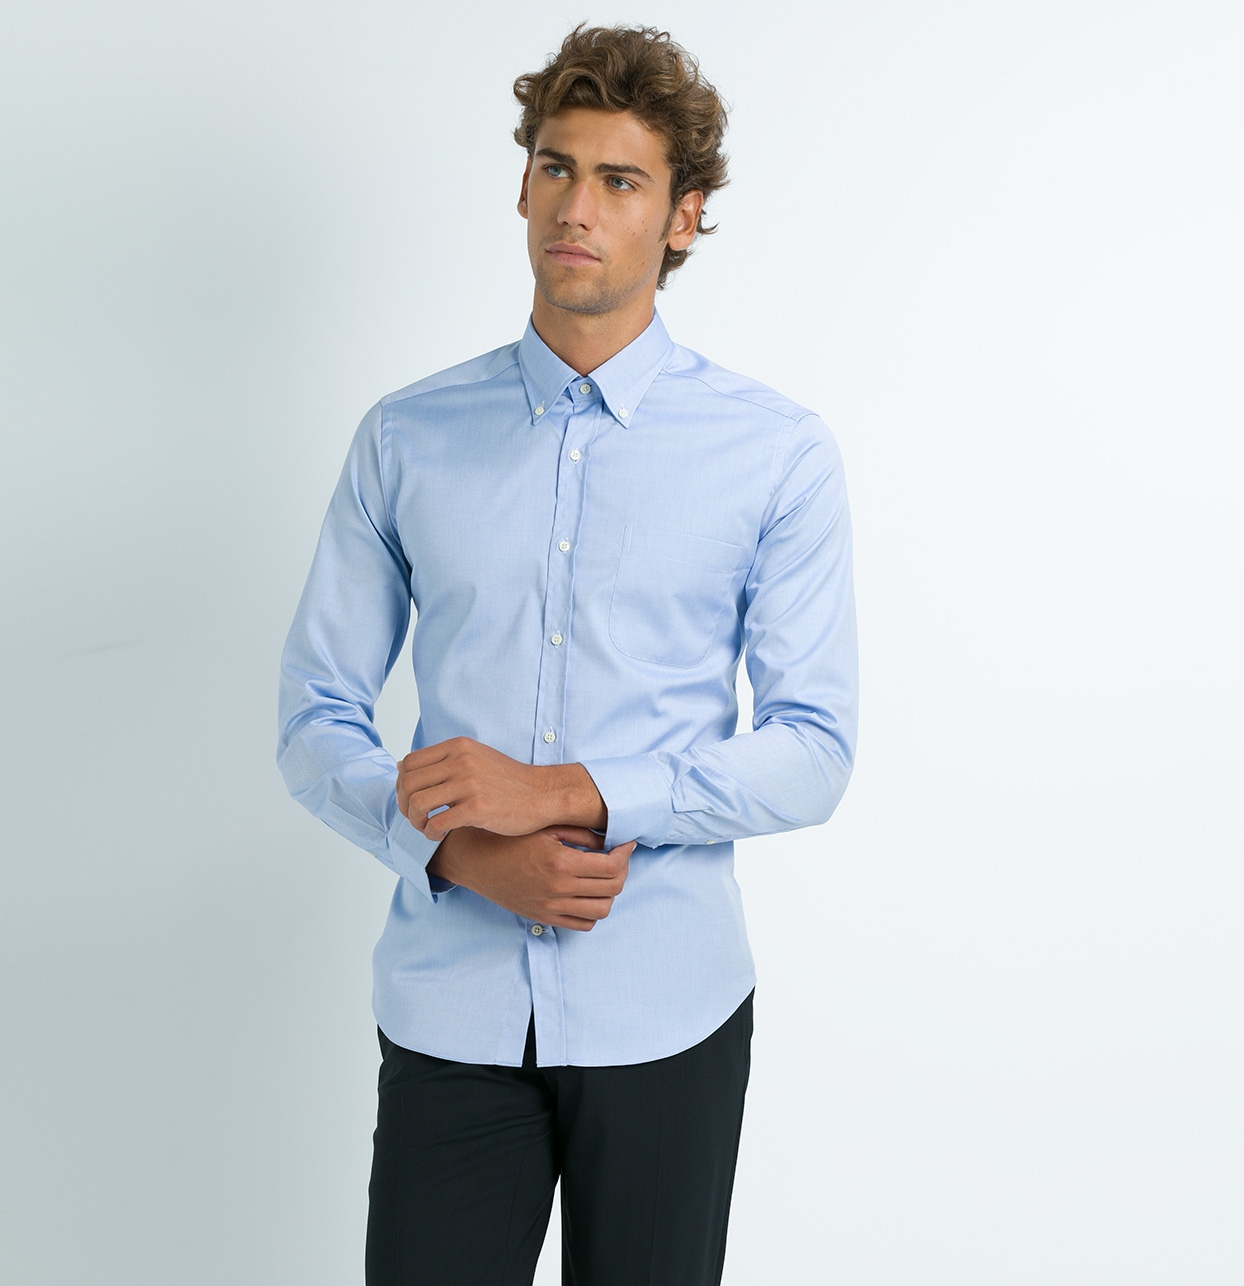 Camisa Formal Wear REGULAR FIT Modelo BOTTON DOWN Tejido micro cuadro color azul, 100% Algodón - Ítem3